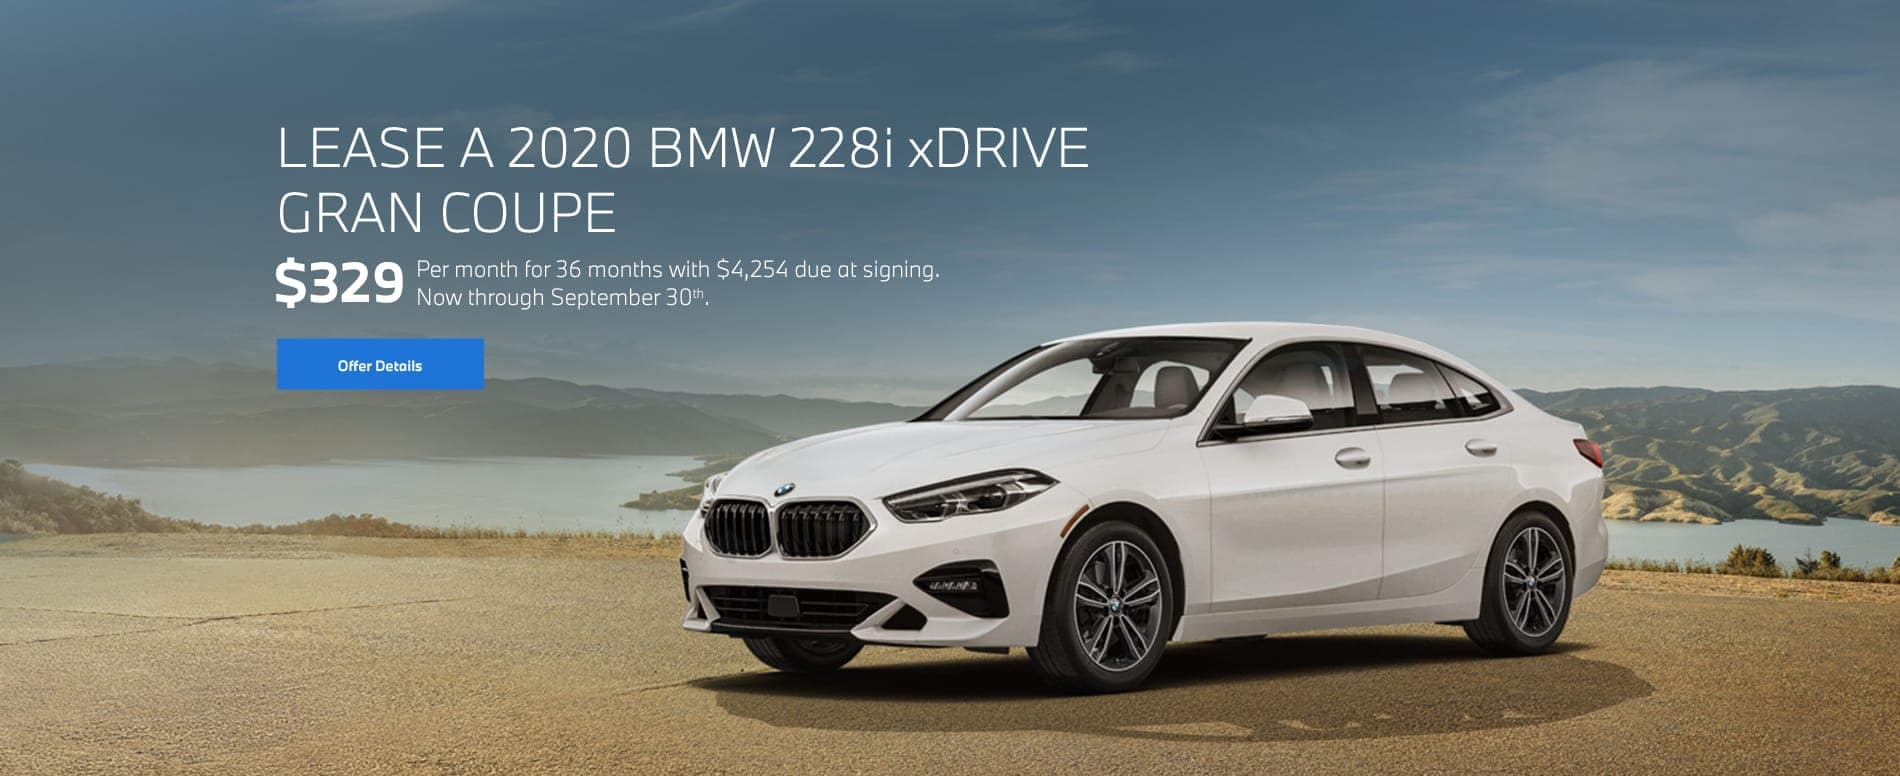 PUSH_2020_BMW_228i_xDrive_329_1900x776_DESKTOP (1)